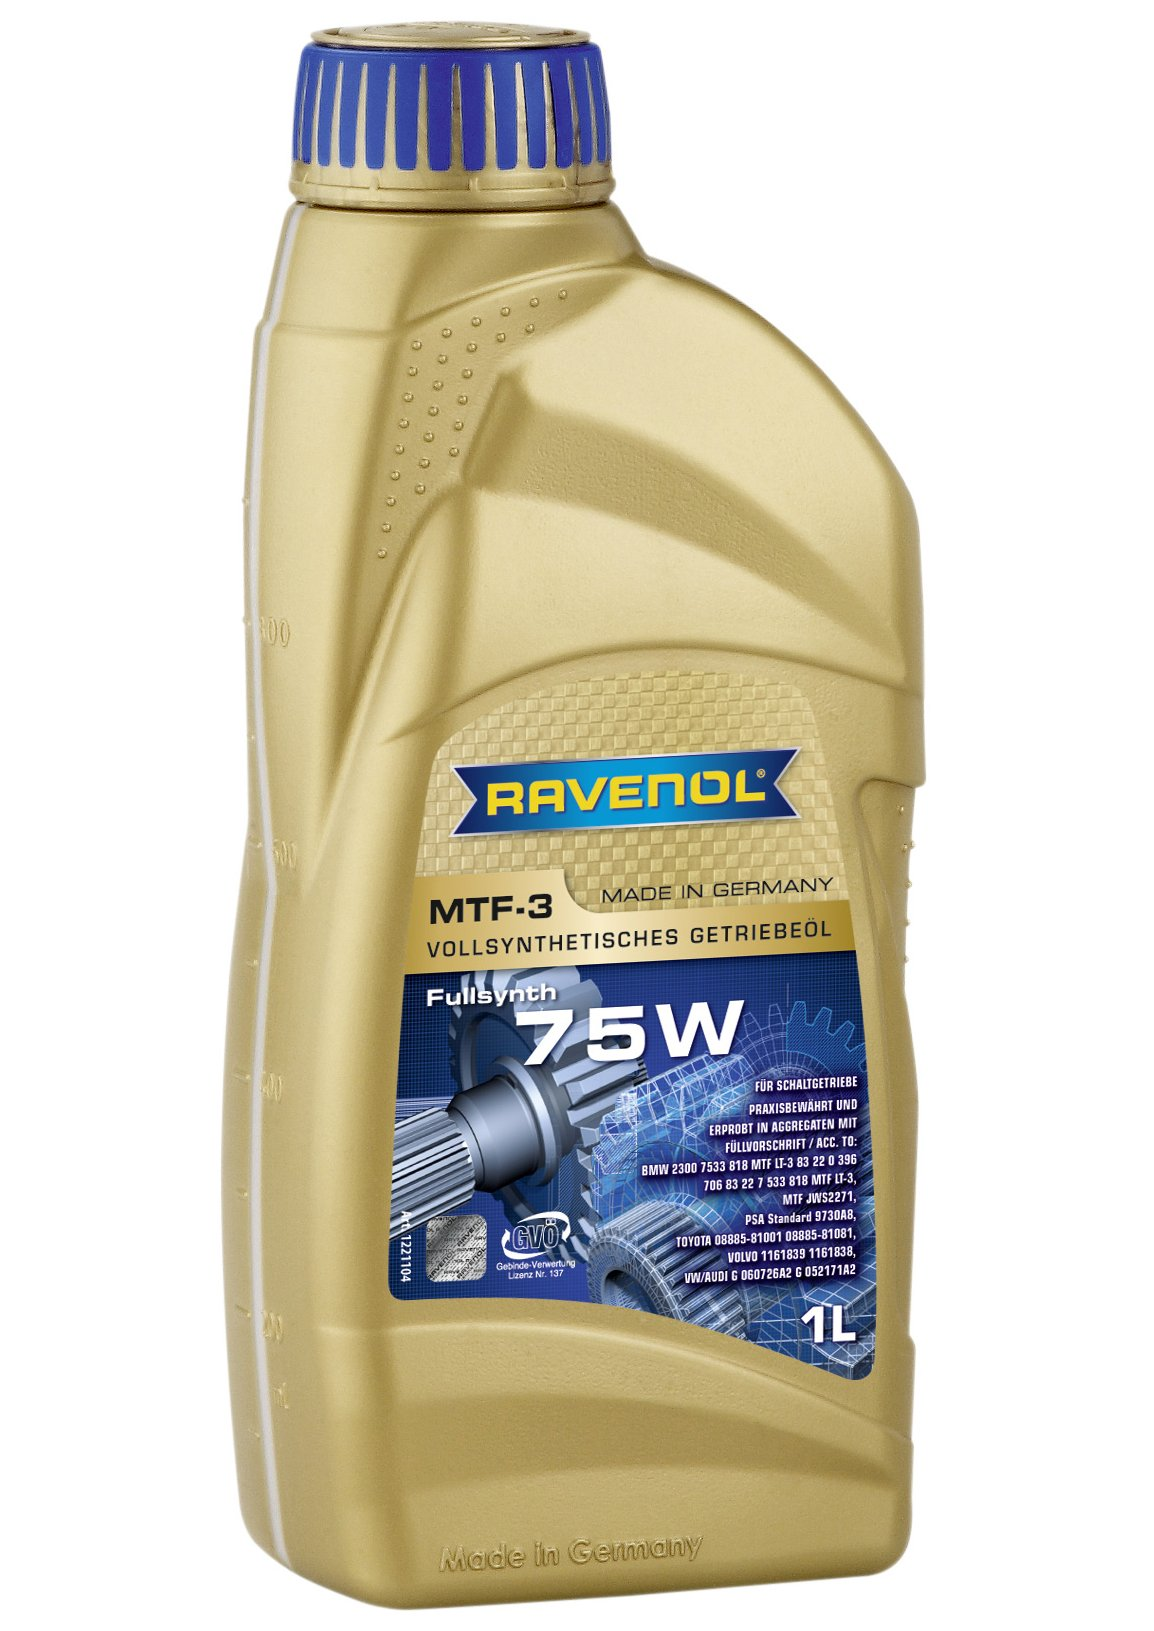 Ravenol J1C1003 SAE 75W Manual Transmission Fluid - MTF-3 Full Synthetic (1 Liter)